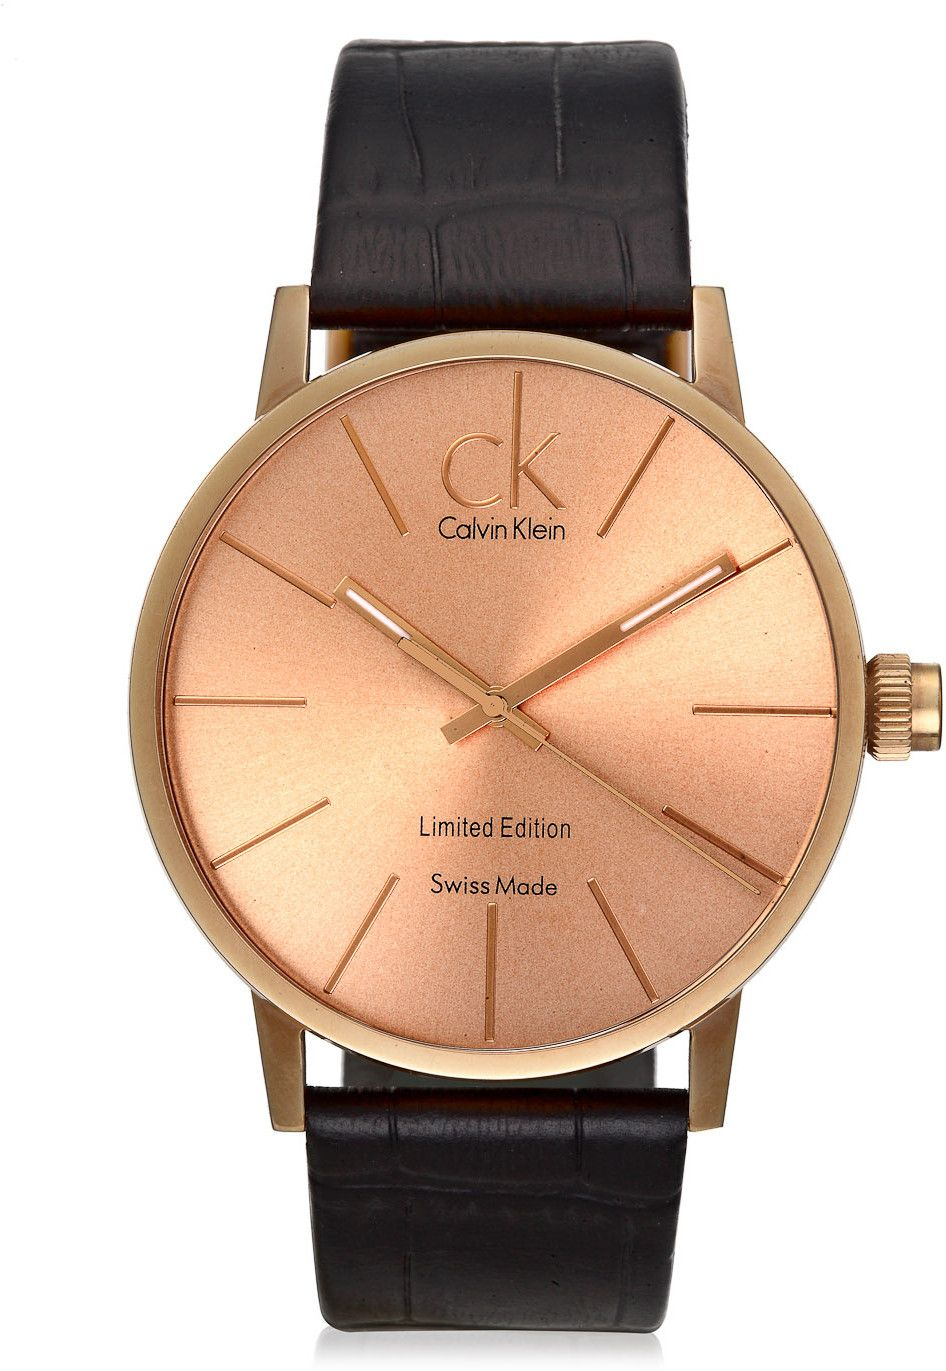 4005b7135085 CK Calvin Klein Limited Edition Rose Gold and Black Leather Watch ...